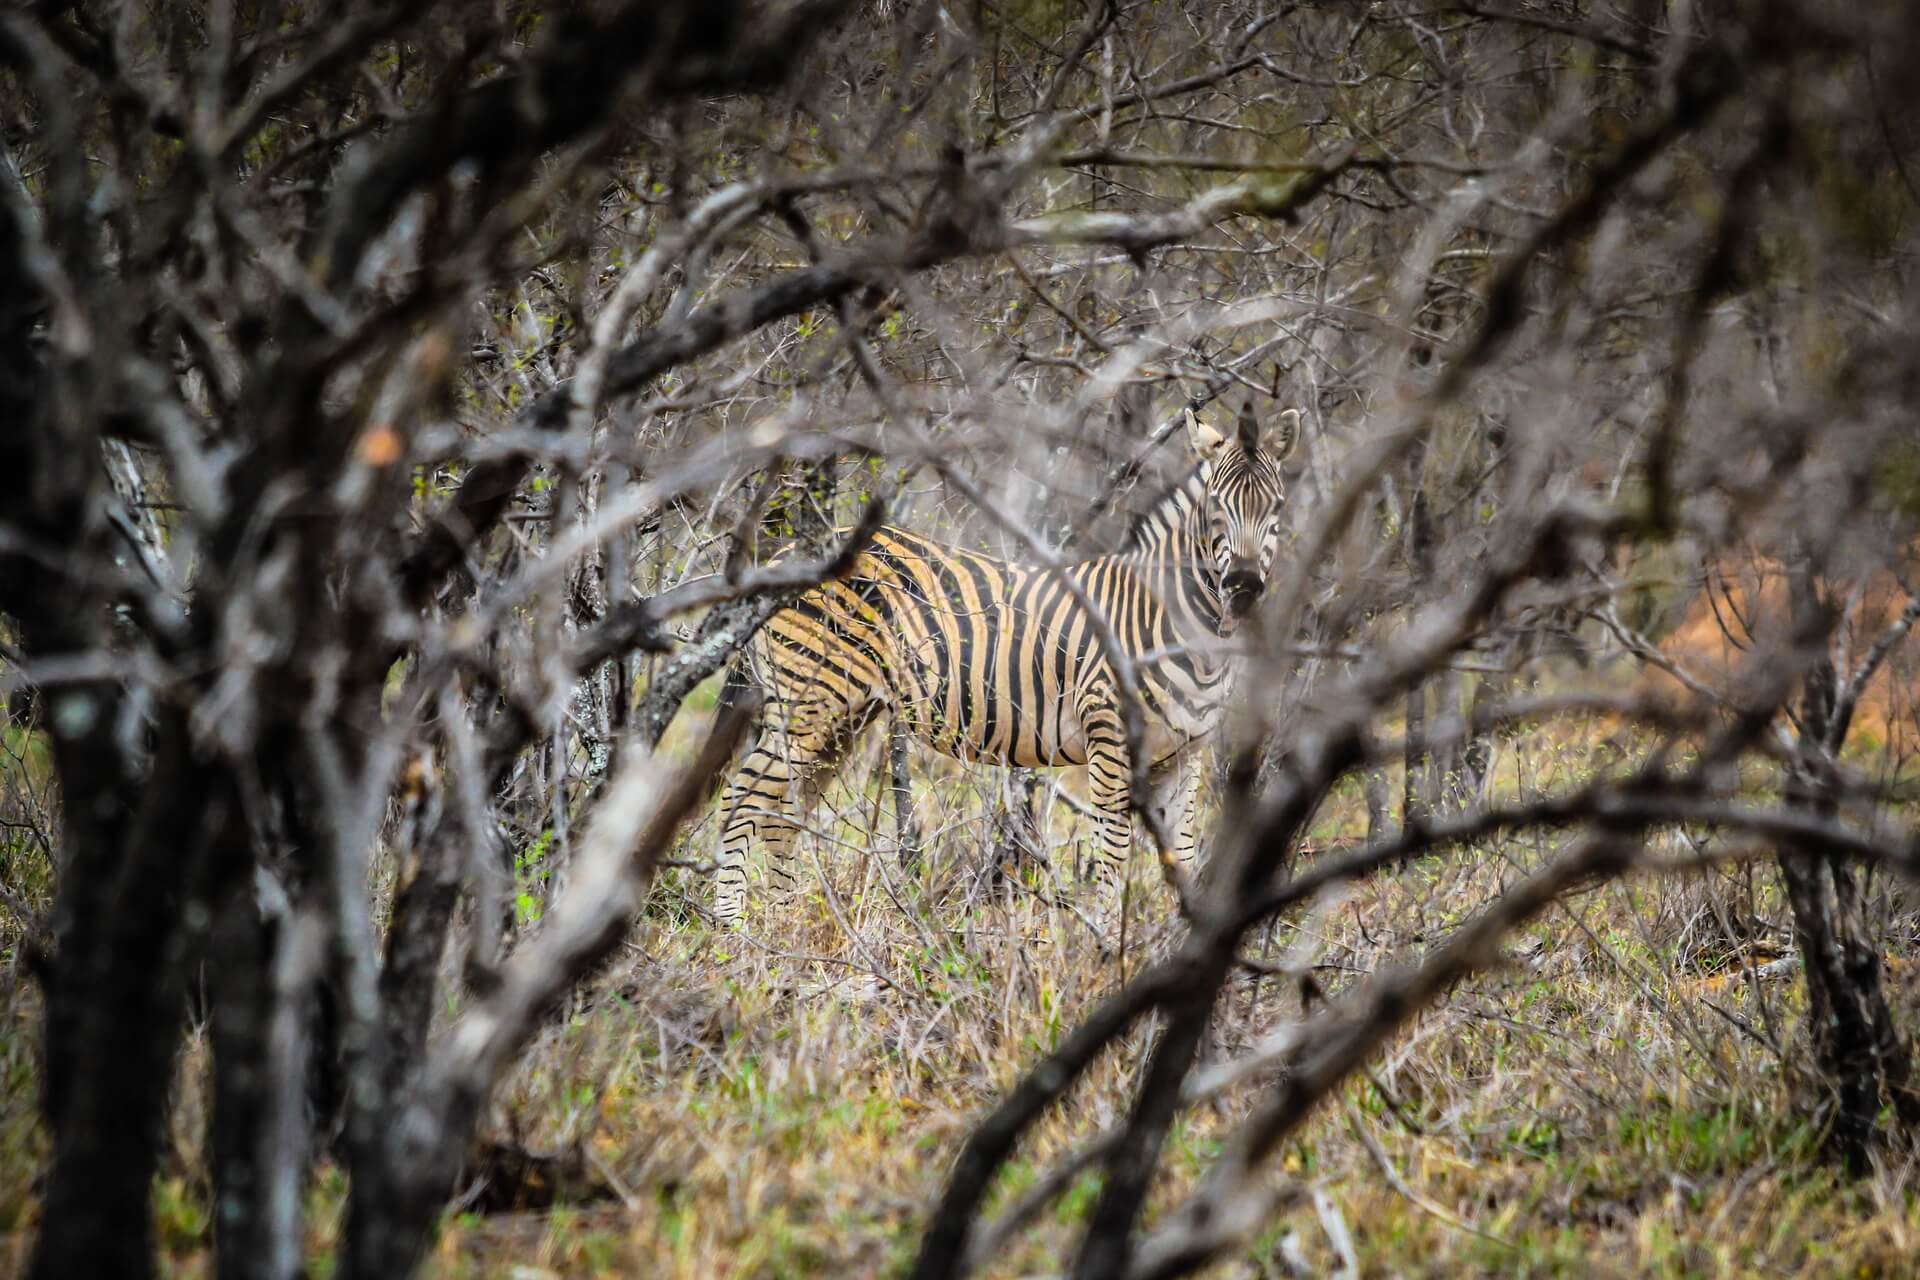 Camouflage: Hiding in Plain Sight from Predators and Prey